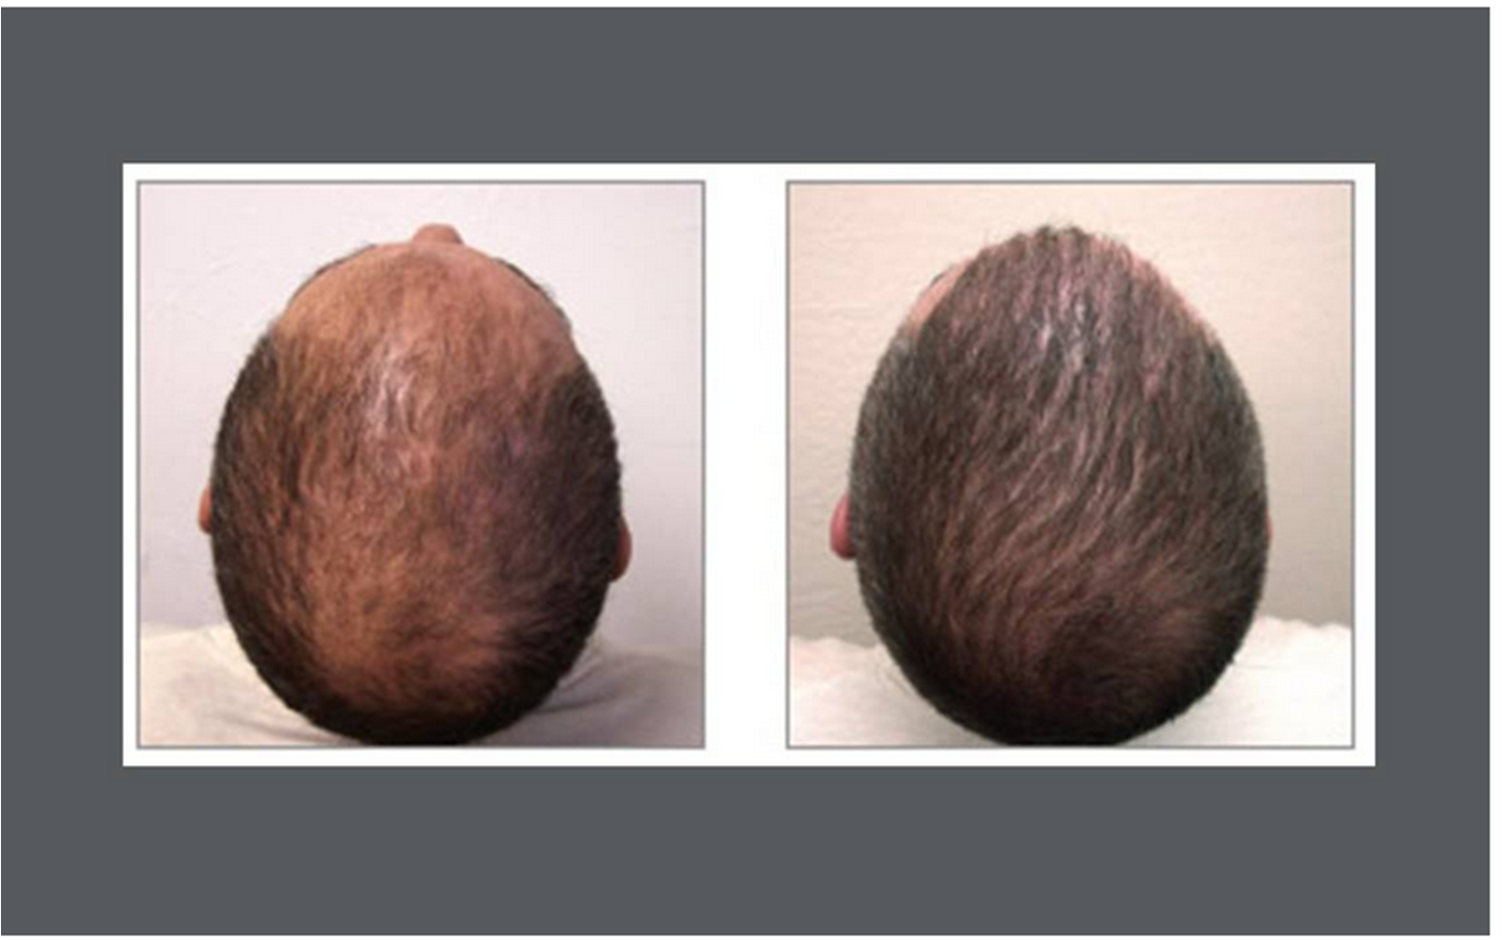 hair transplant - long island new york - dr. stephen greenberg